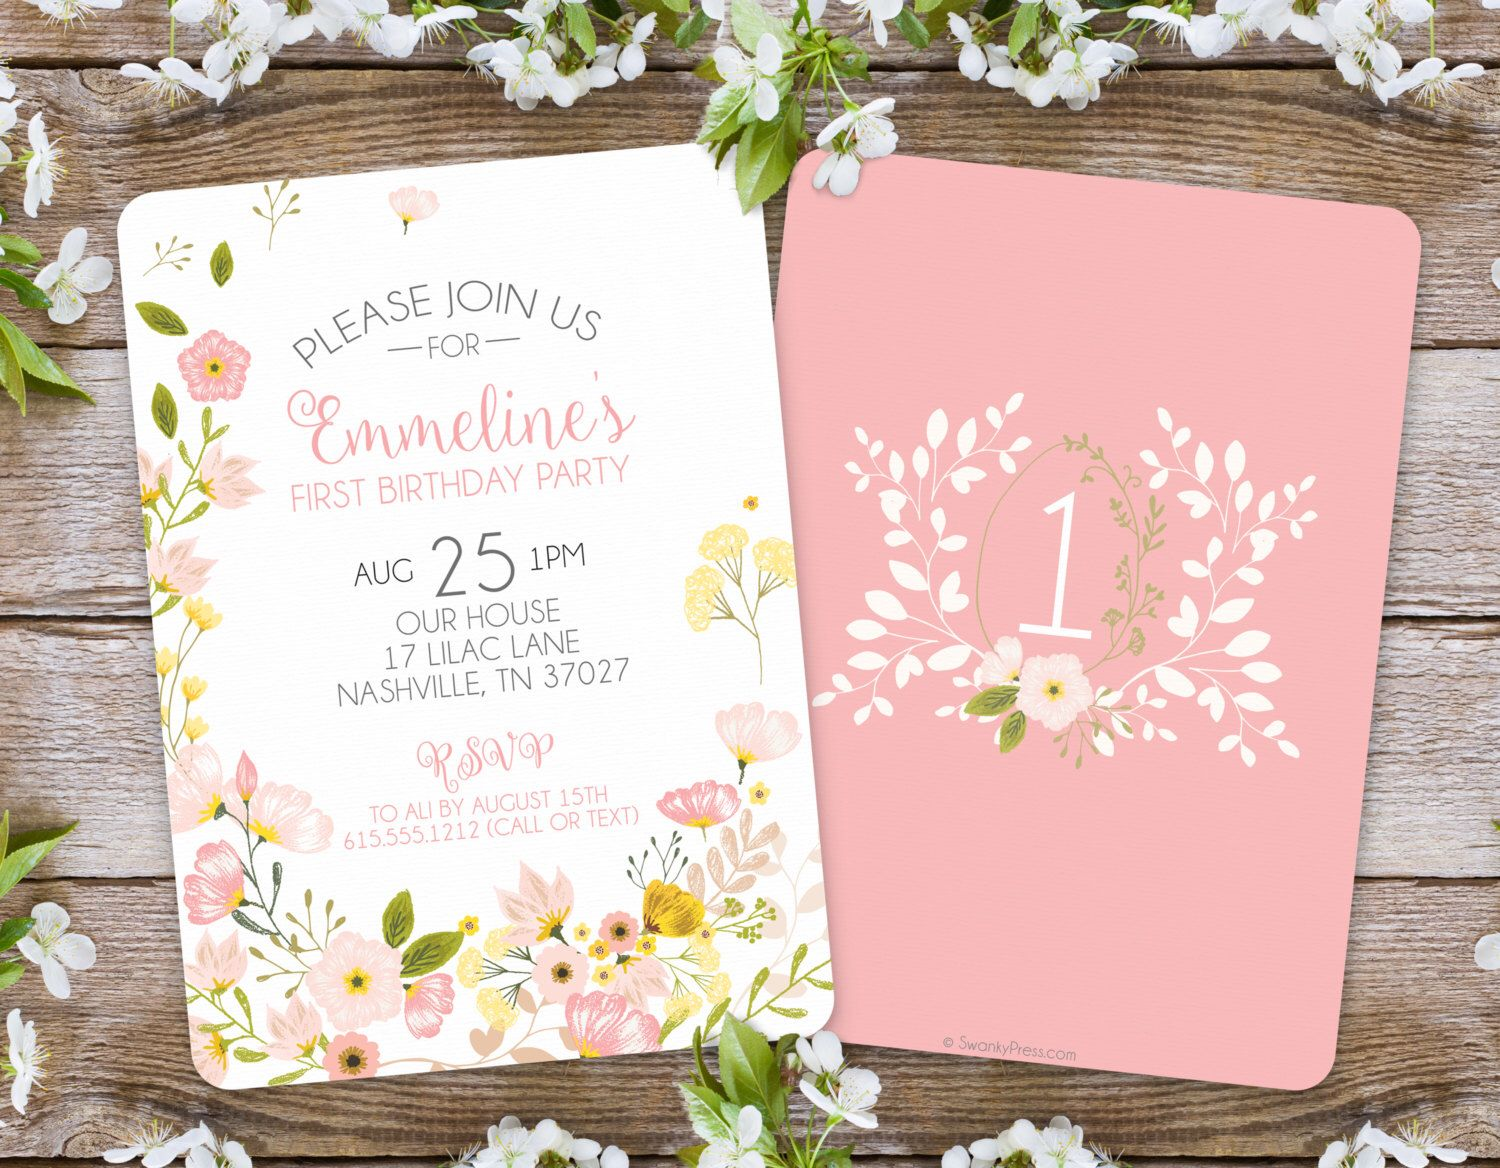 First Birthday Invitation / Girl Floral Invitation / Garden Party / 1st birthday invitation by SwankyPress on Etsy https://www.etsy.com/listing/398130225/first-birthday-invitation-girl-floral